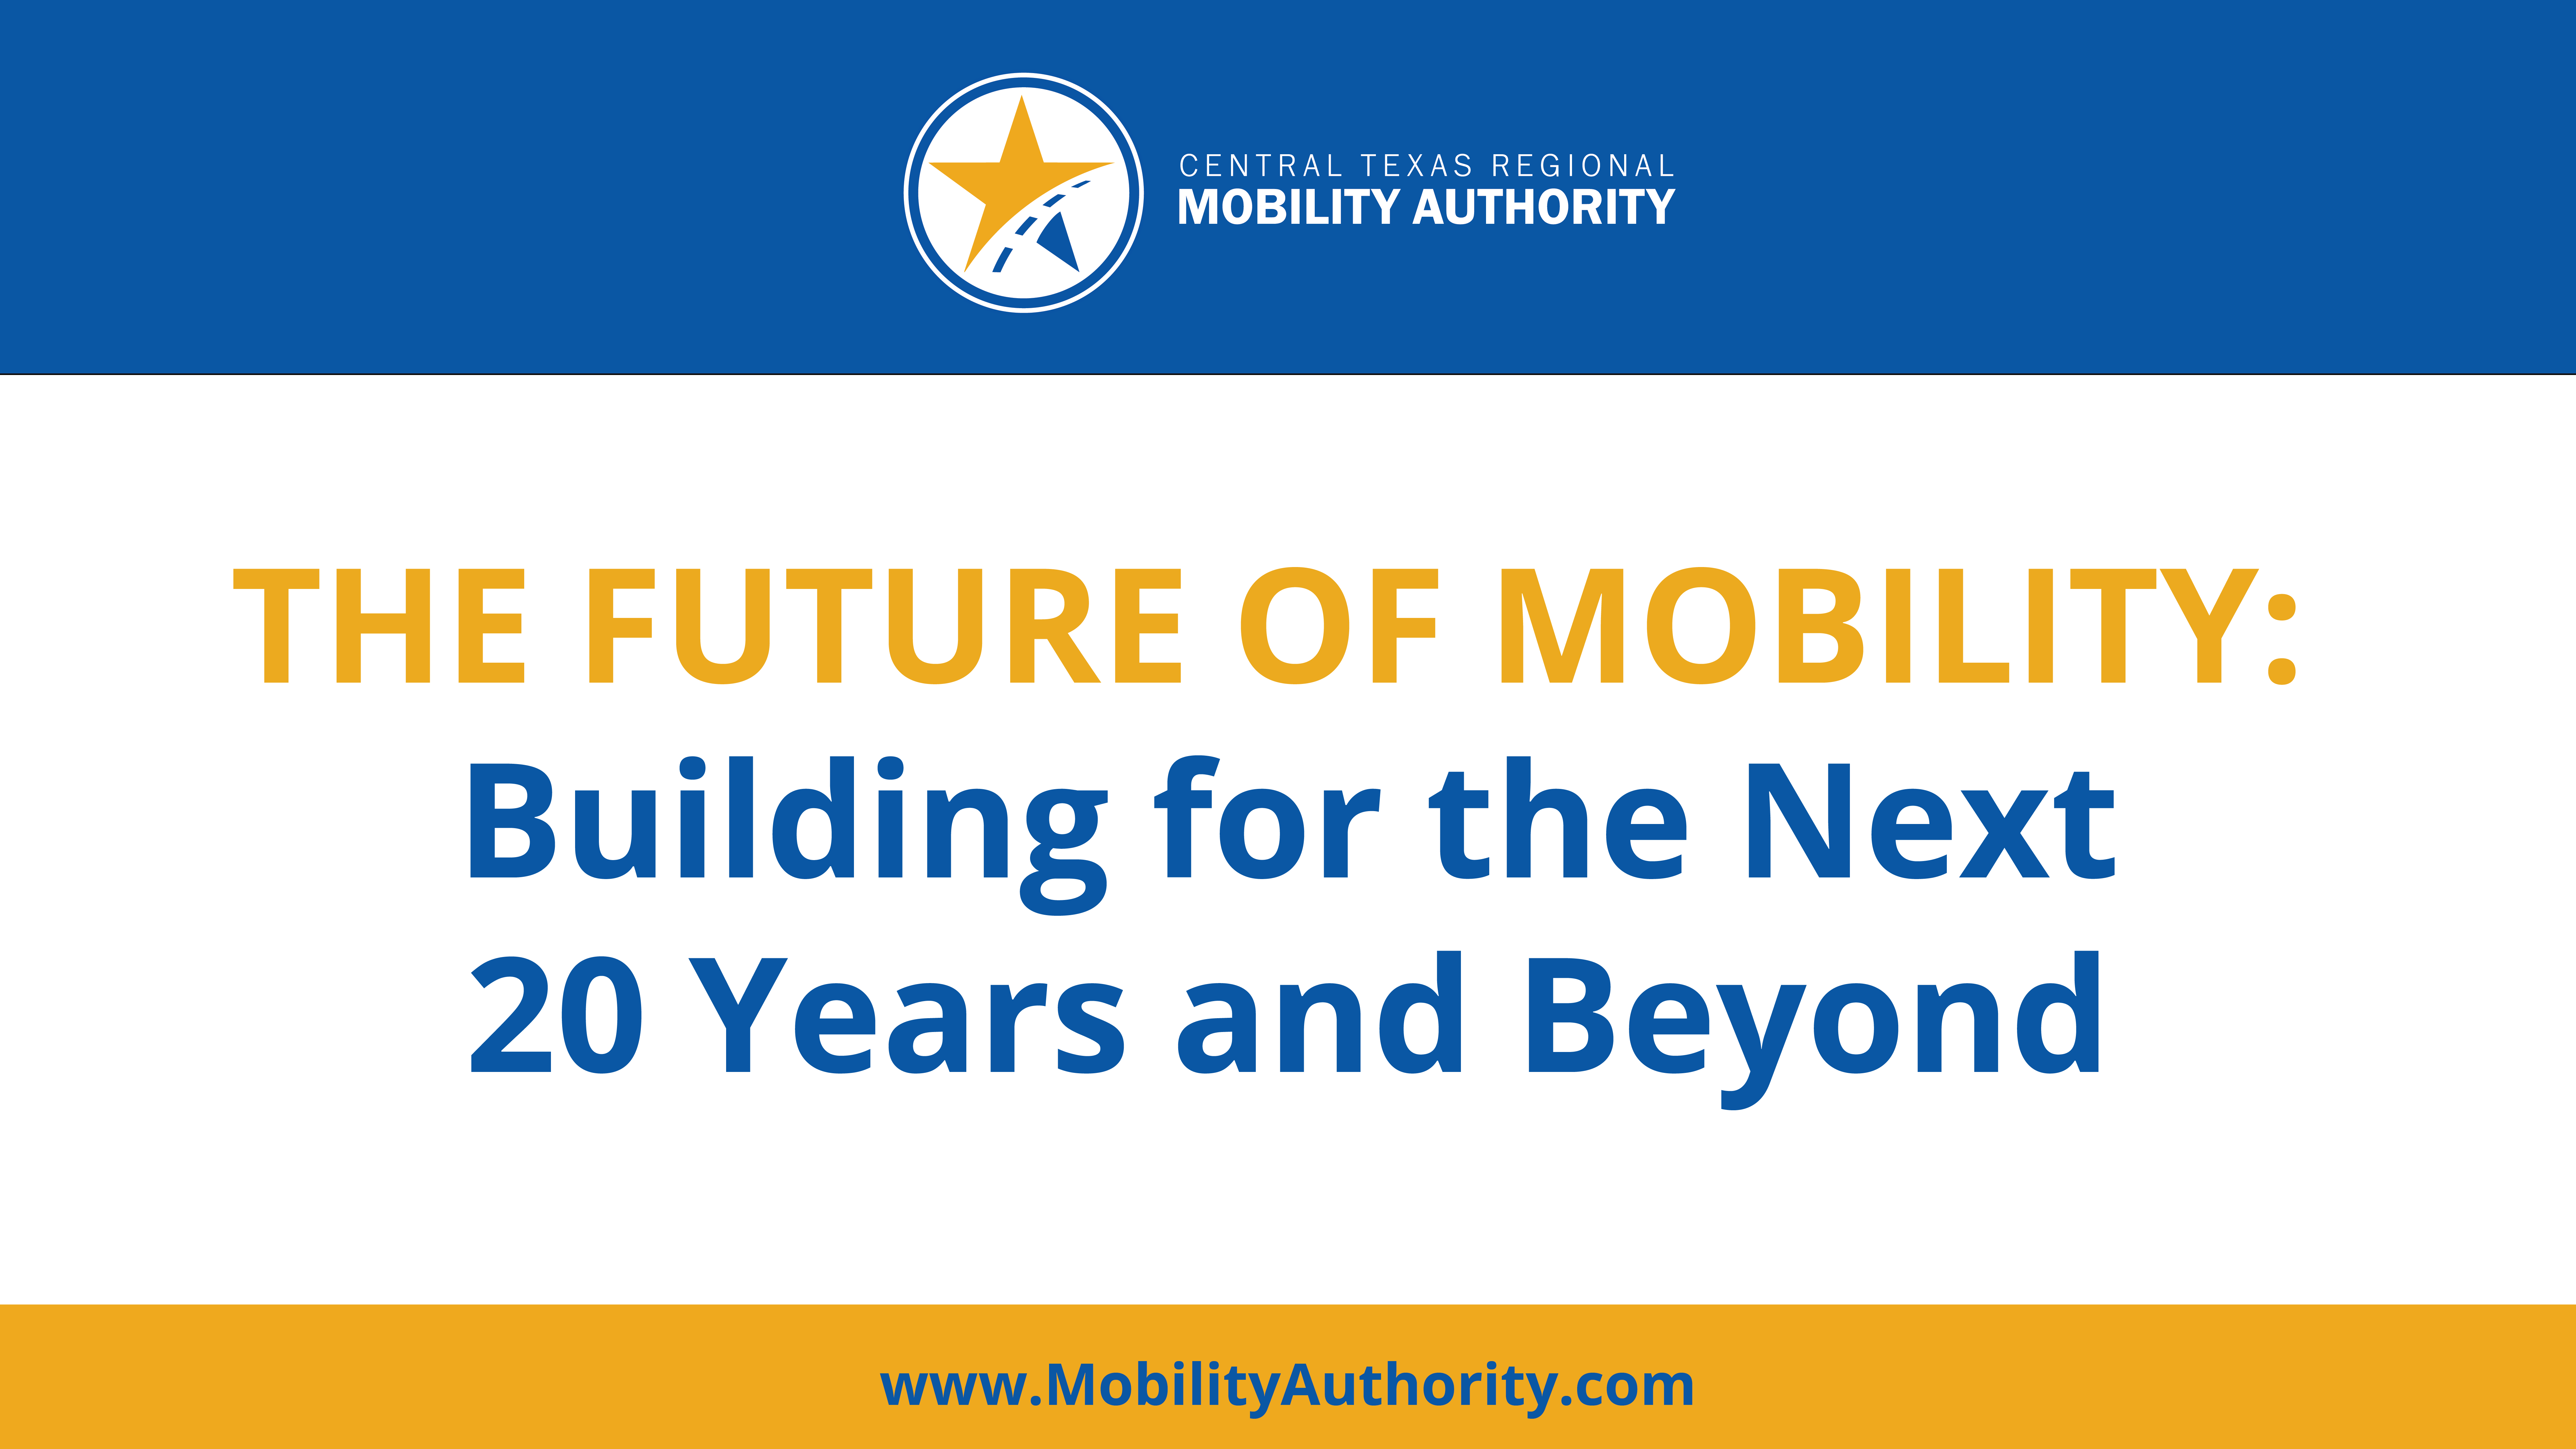 [Partner Program] The Future of Mobility: Building for the Next 20 Years and Beyond